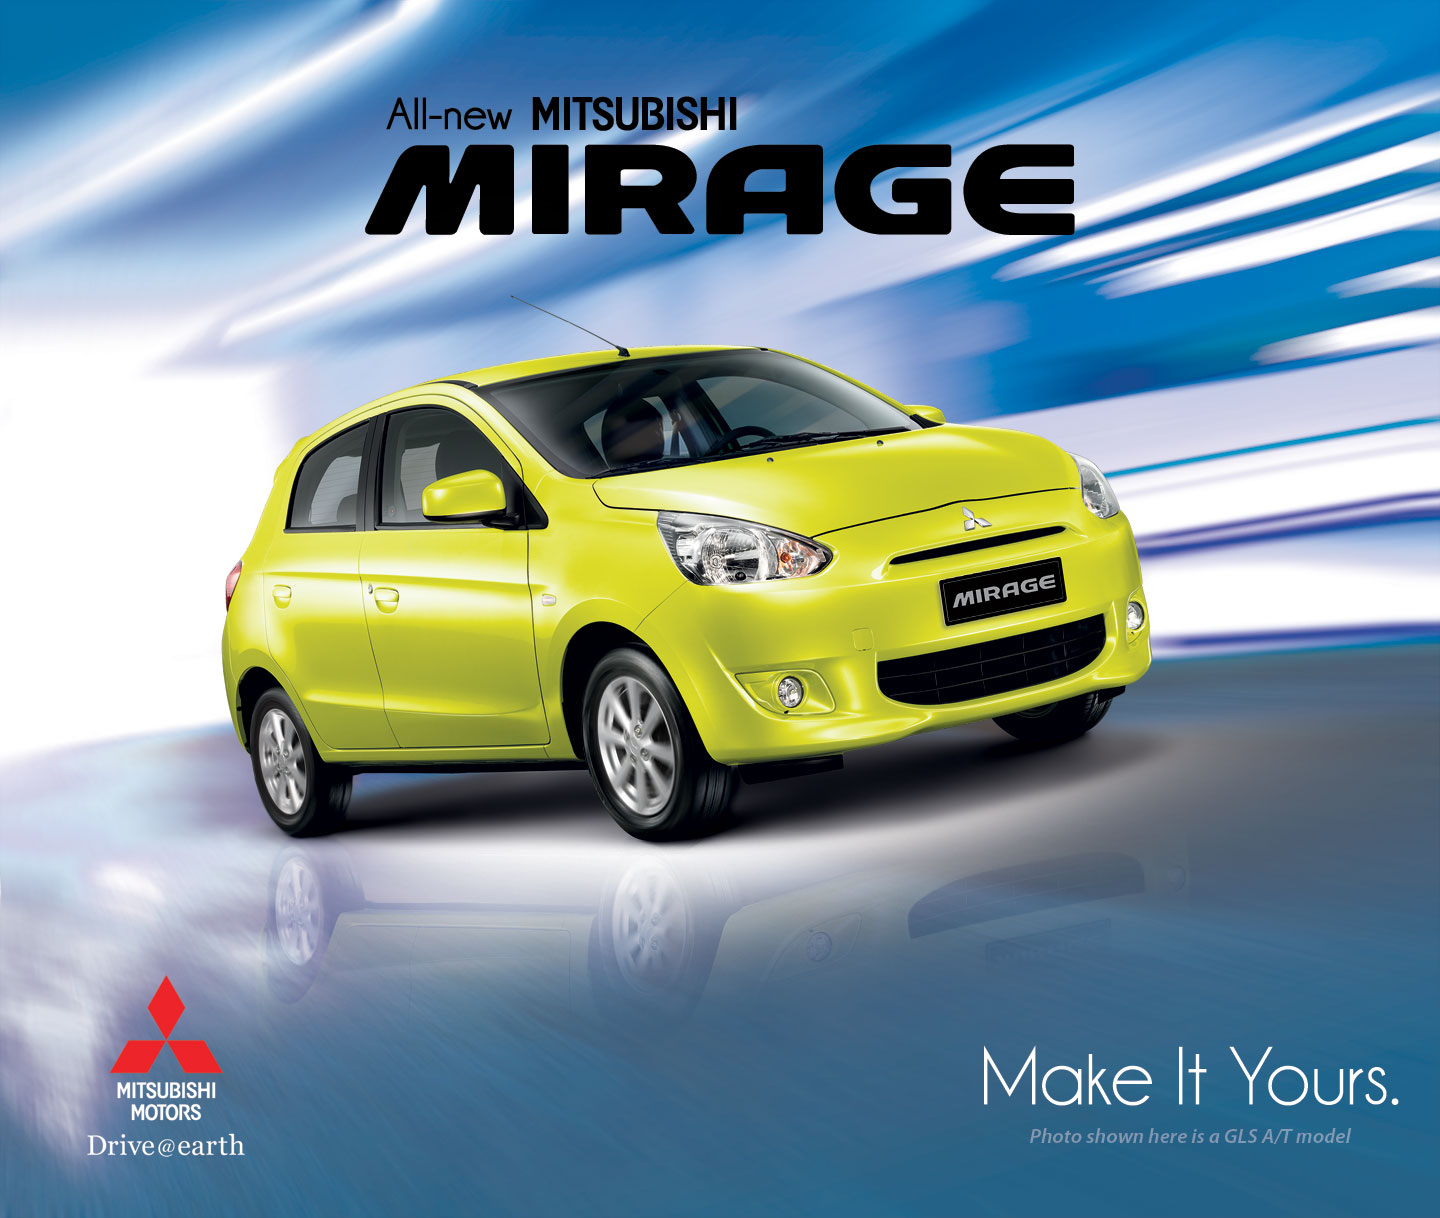 Mitsubishi Background: Mitsubishi Mirage Wallpaper